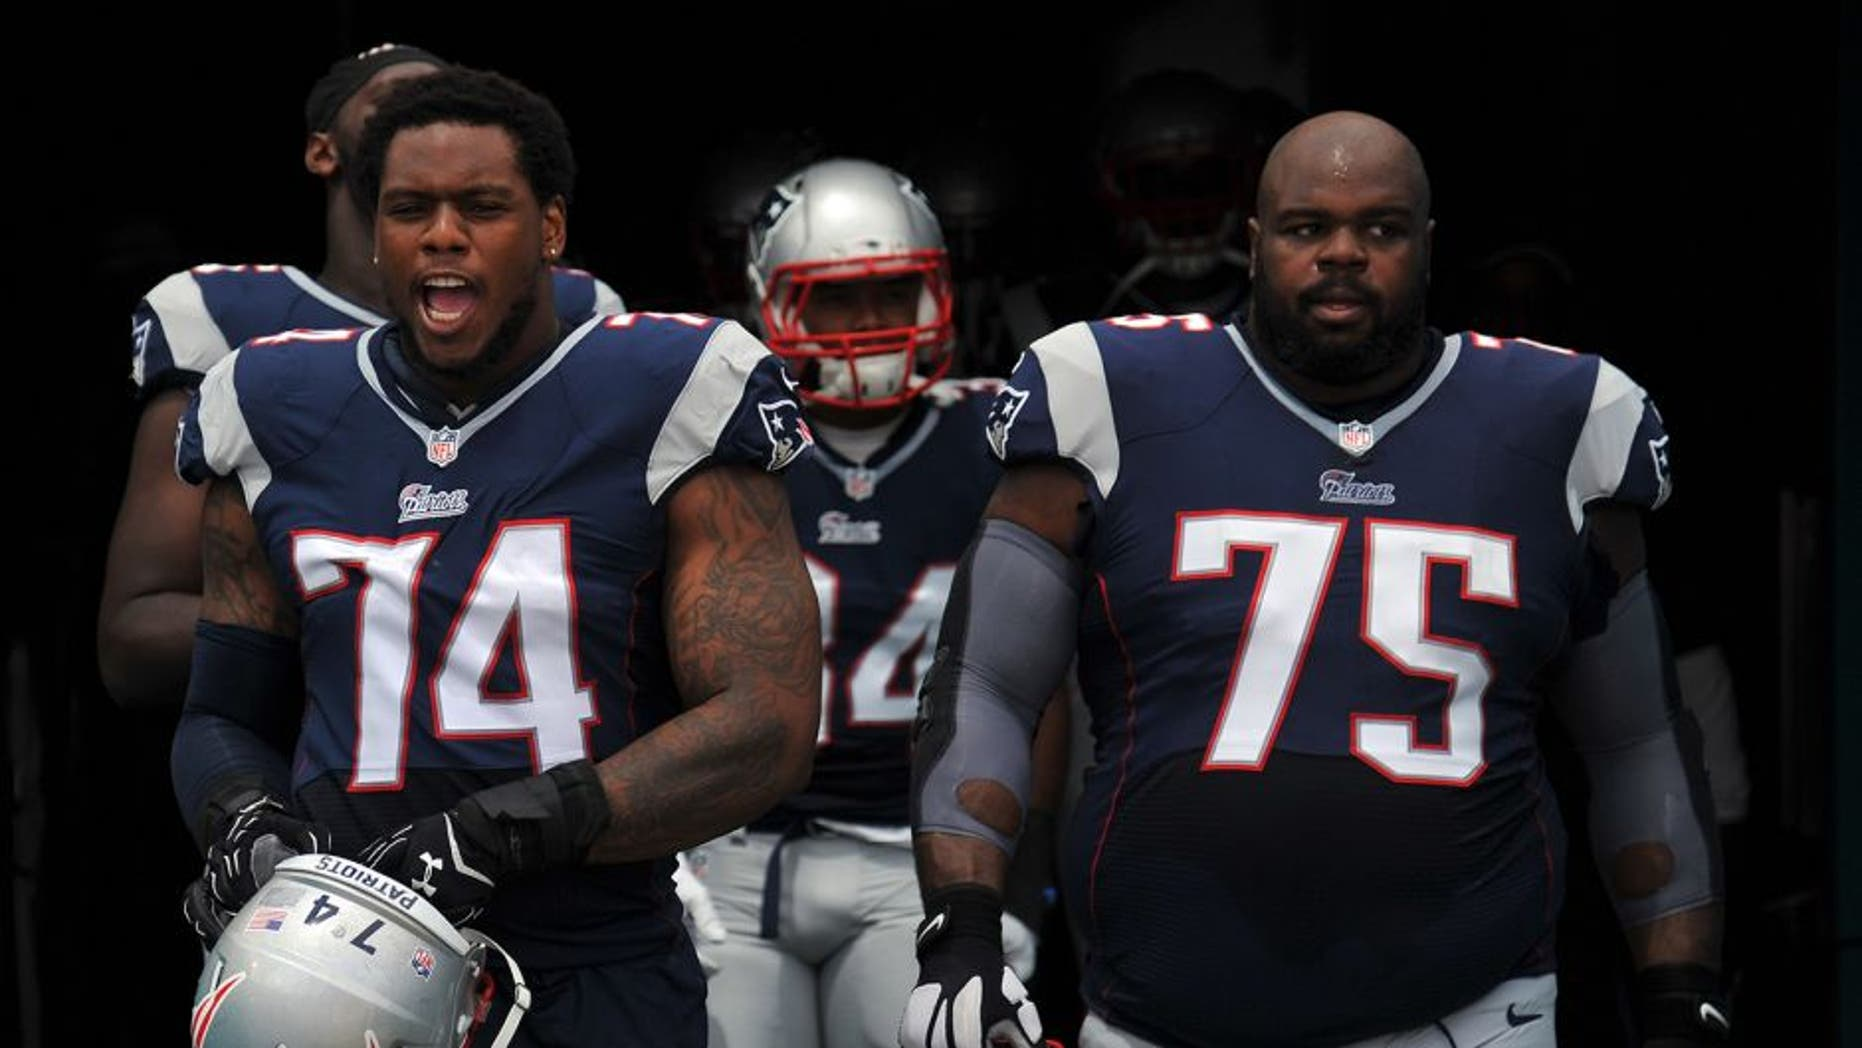 Sep 7, 2014; Miami Gardens, FL, USA; New England Patriots defensive tackle Dominique Easley (left) and defensive tackle Vince Wilfork (right) both take the field before a game against the Miami Dolphins at Sun Life Stadium. Mandatory Credit: Steve Mitchell-USA TODAY Sports